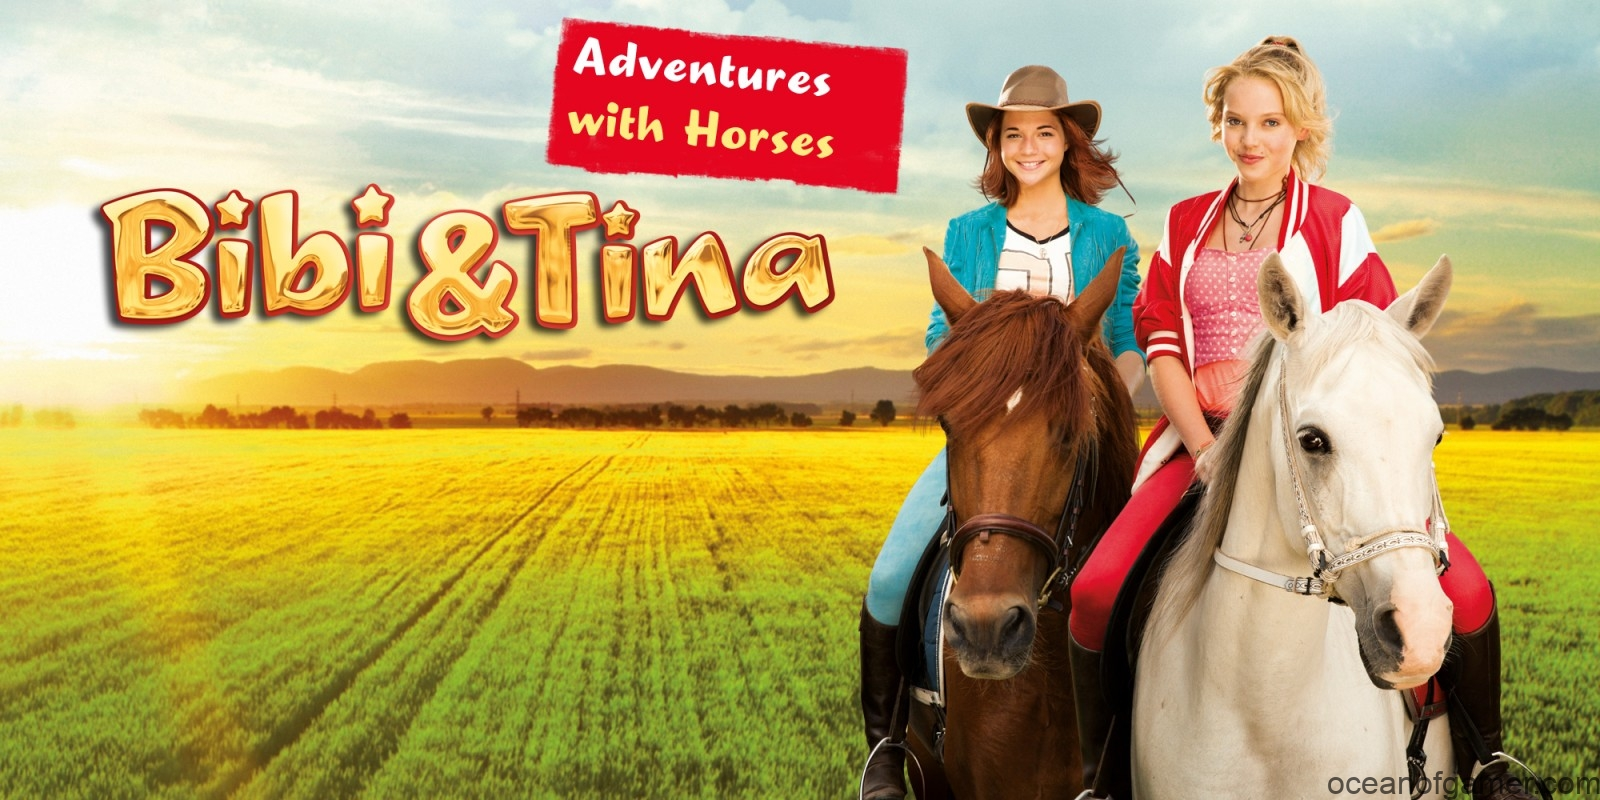 Bibi and Tina Adventures with Horses